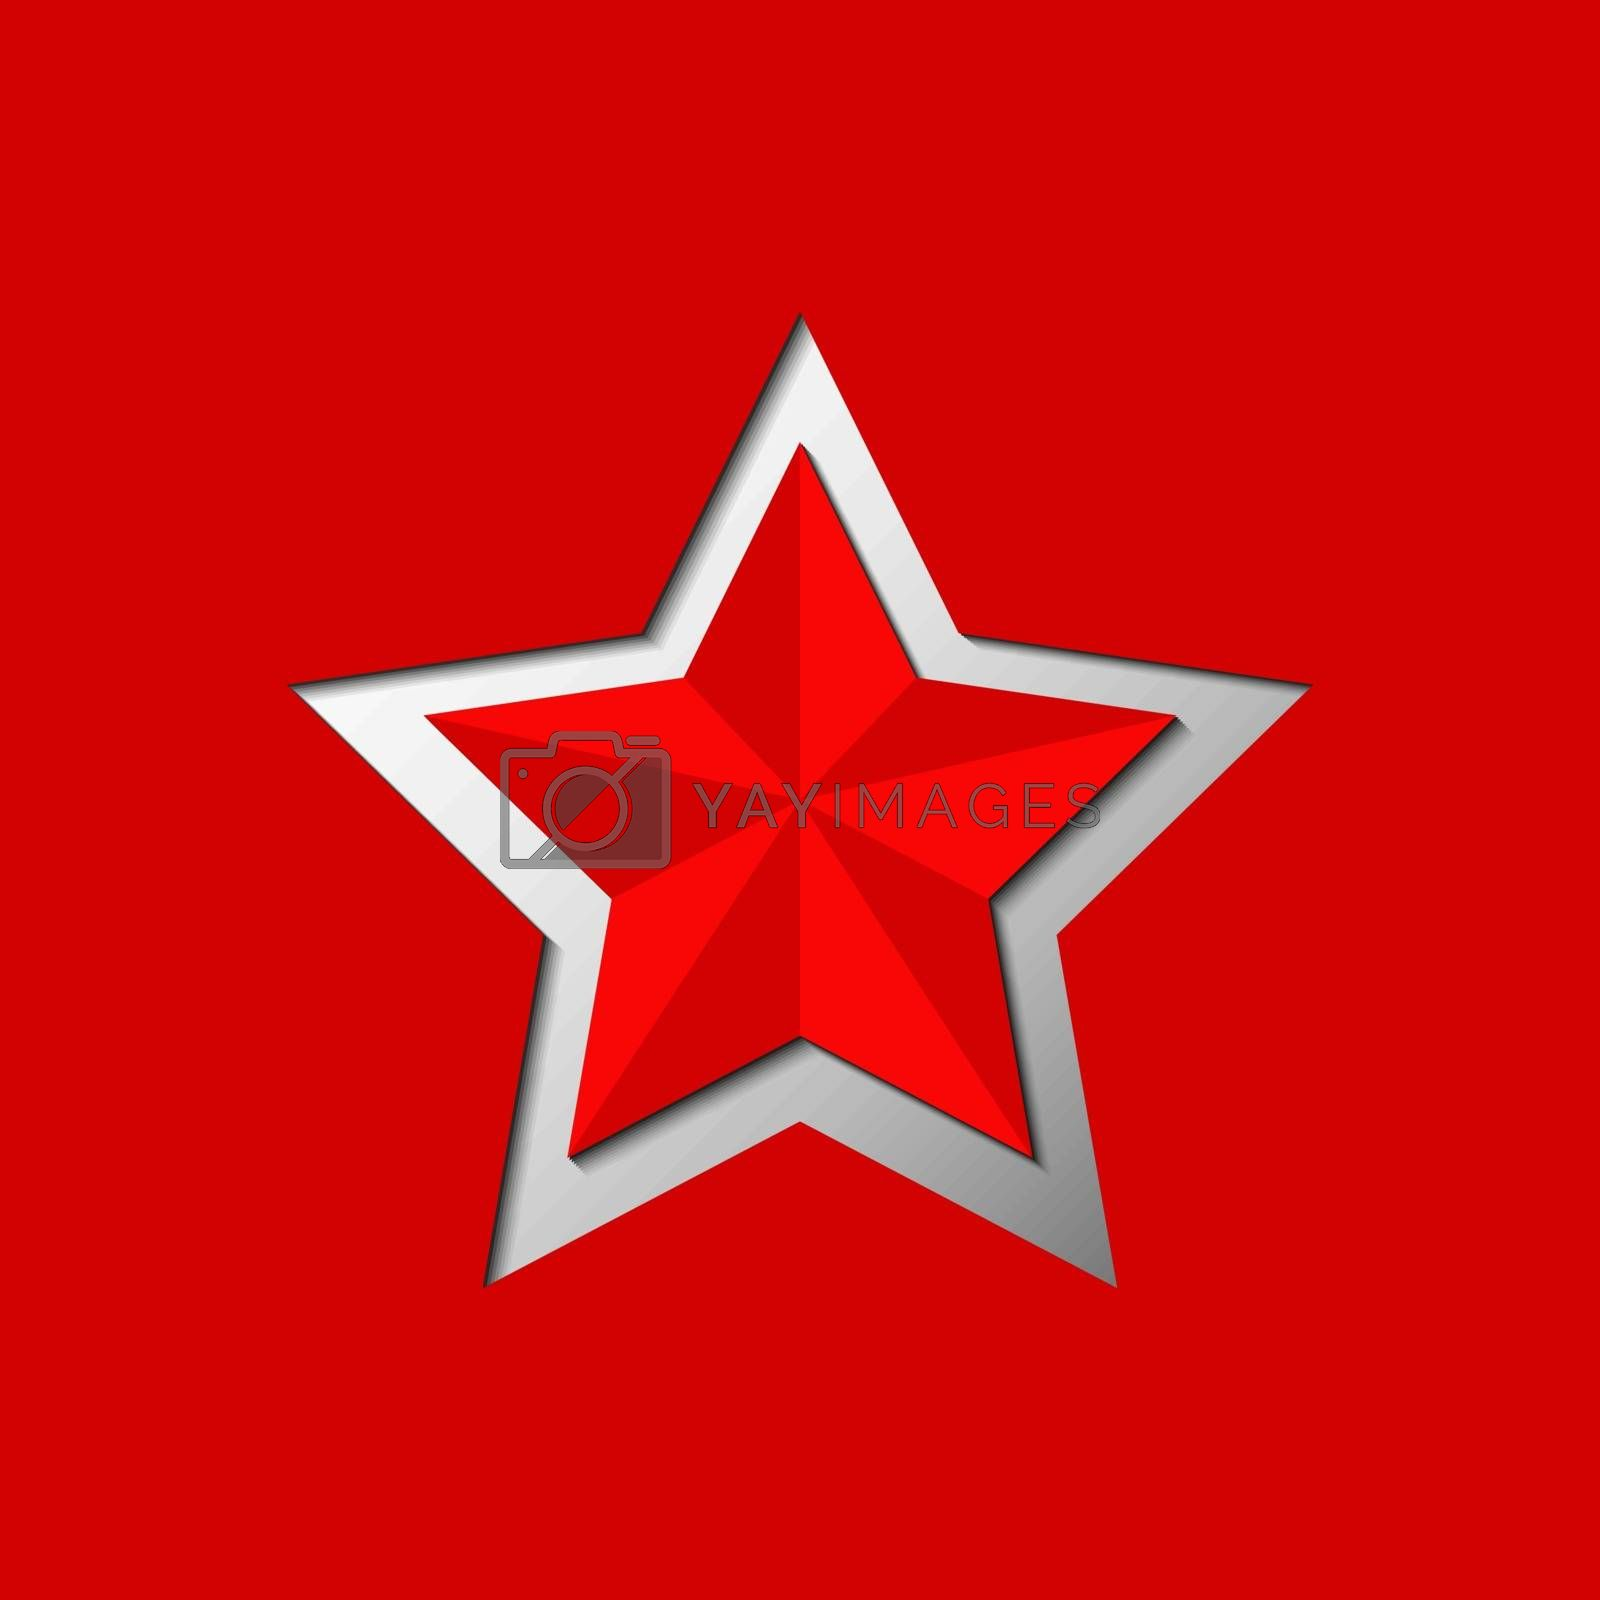 Red five-pointed star carved on red background